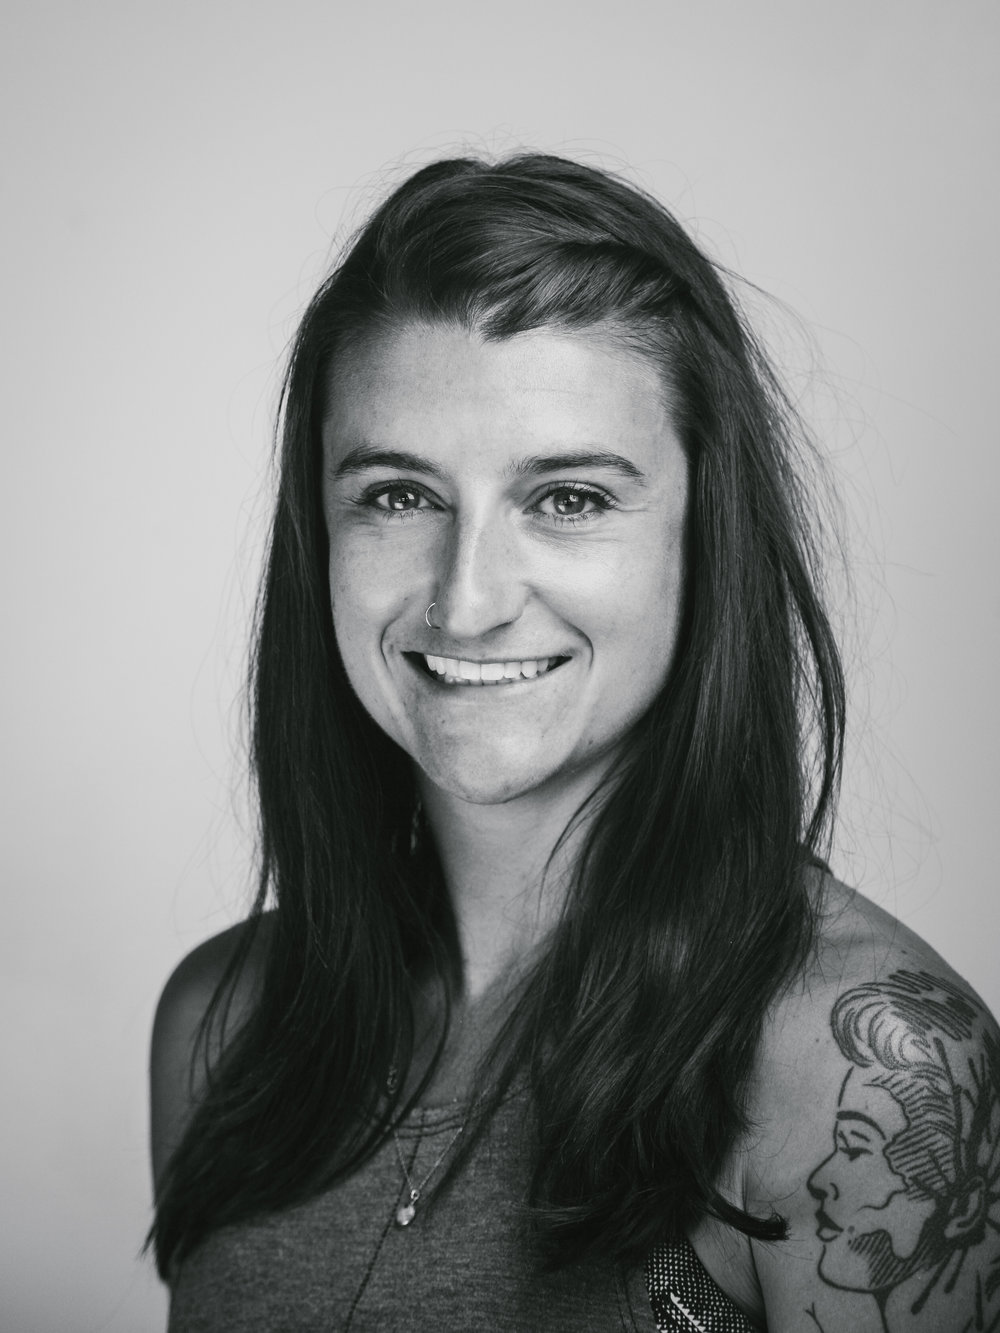 Erin Butler - I teach: TRX & Train StrongI am a certified personal trainer, nutritionist and outdoor enthusiast. I teach because it's invigorating to see individuals challenge their own strength every class. Showing up is half the battle, my hope is I can make it that much more appealing to come back and work hard over and over again.Words I Live By: Let her be free.Beats I Move To:full on dance party. I little bit of electronic, house music with some classic old school jams to mix it up.What I Live For:I am learning to be more vulnerable or open. To feel uncomfortable, or wrong, to make mistakes or try new things. This has produced more light and growth in my life than the fear based path I was previously choosing.